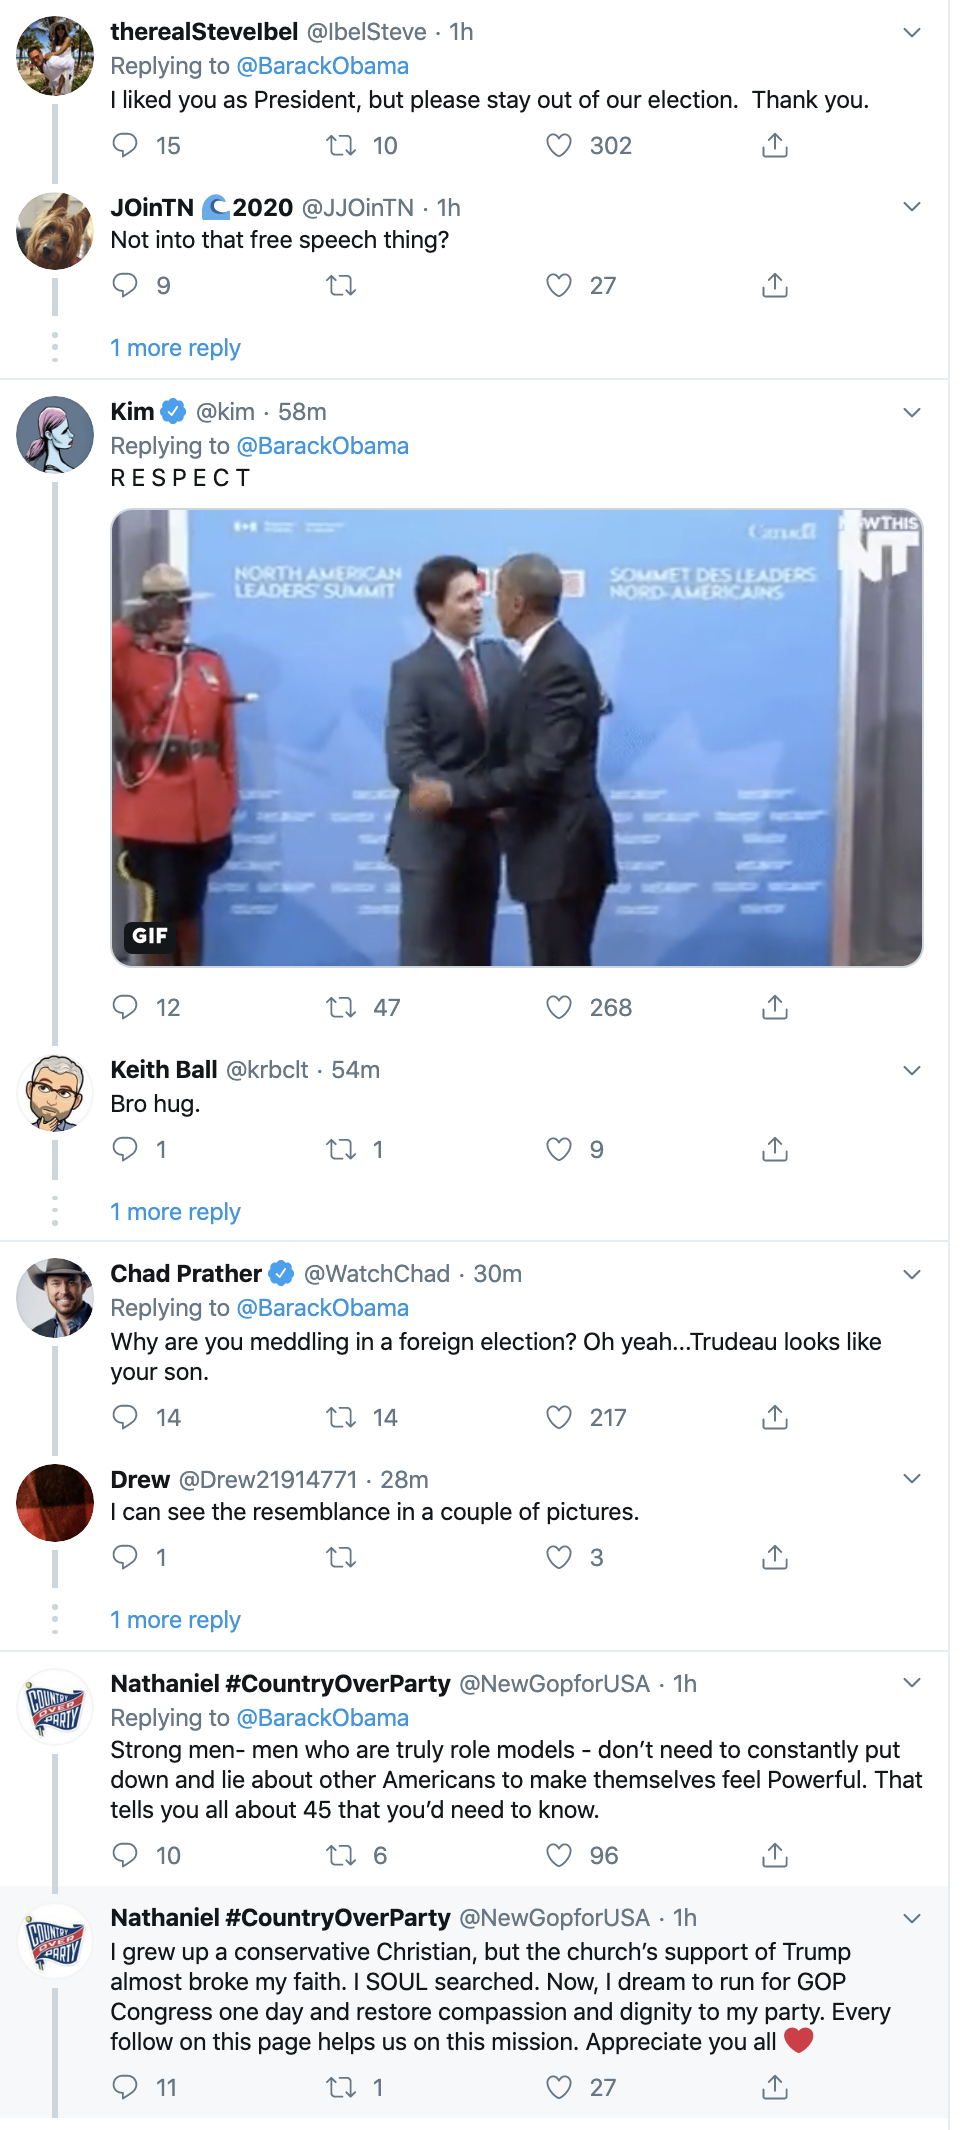 Screen-Shot-2019-10-16-at-2.38.36-PM Obama Tweets Wednesday Endorsement  That Has Conservatives Fuming Activism Black Lives Matter Civil Rights Corruption Domestic Policy Featured Foreign Policy Politics Top Stories